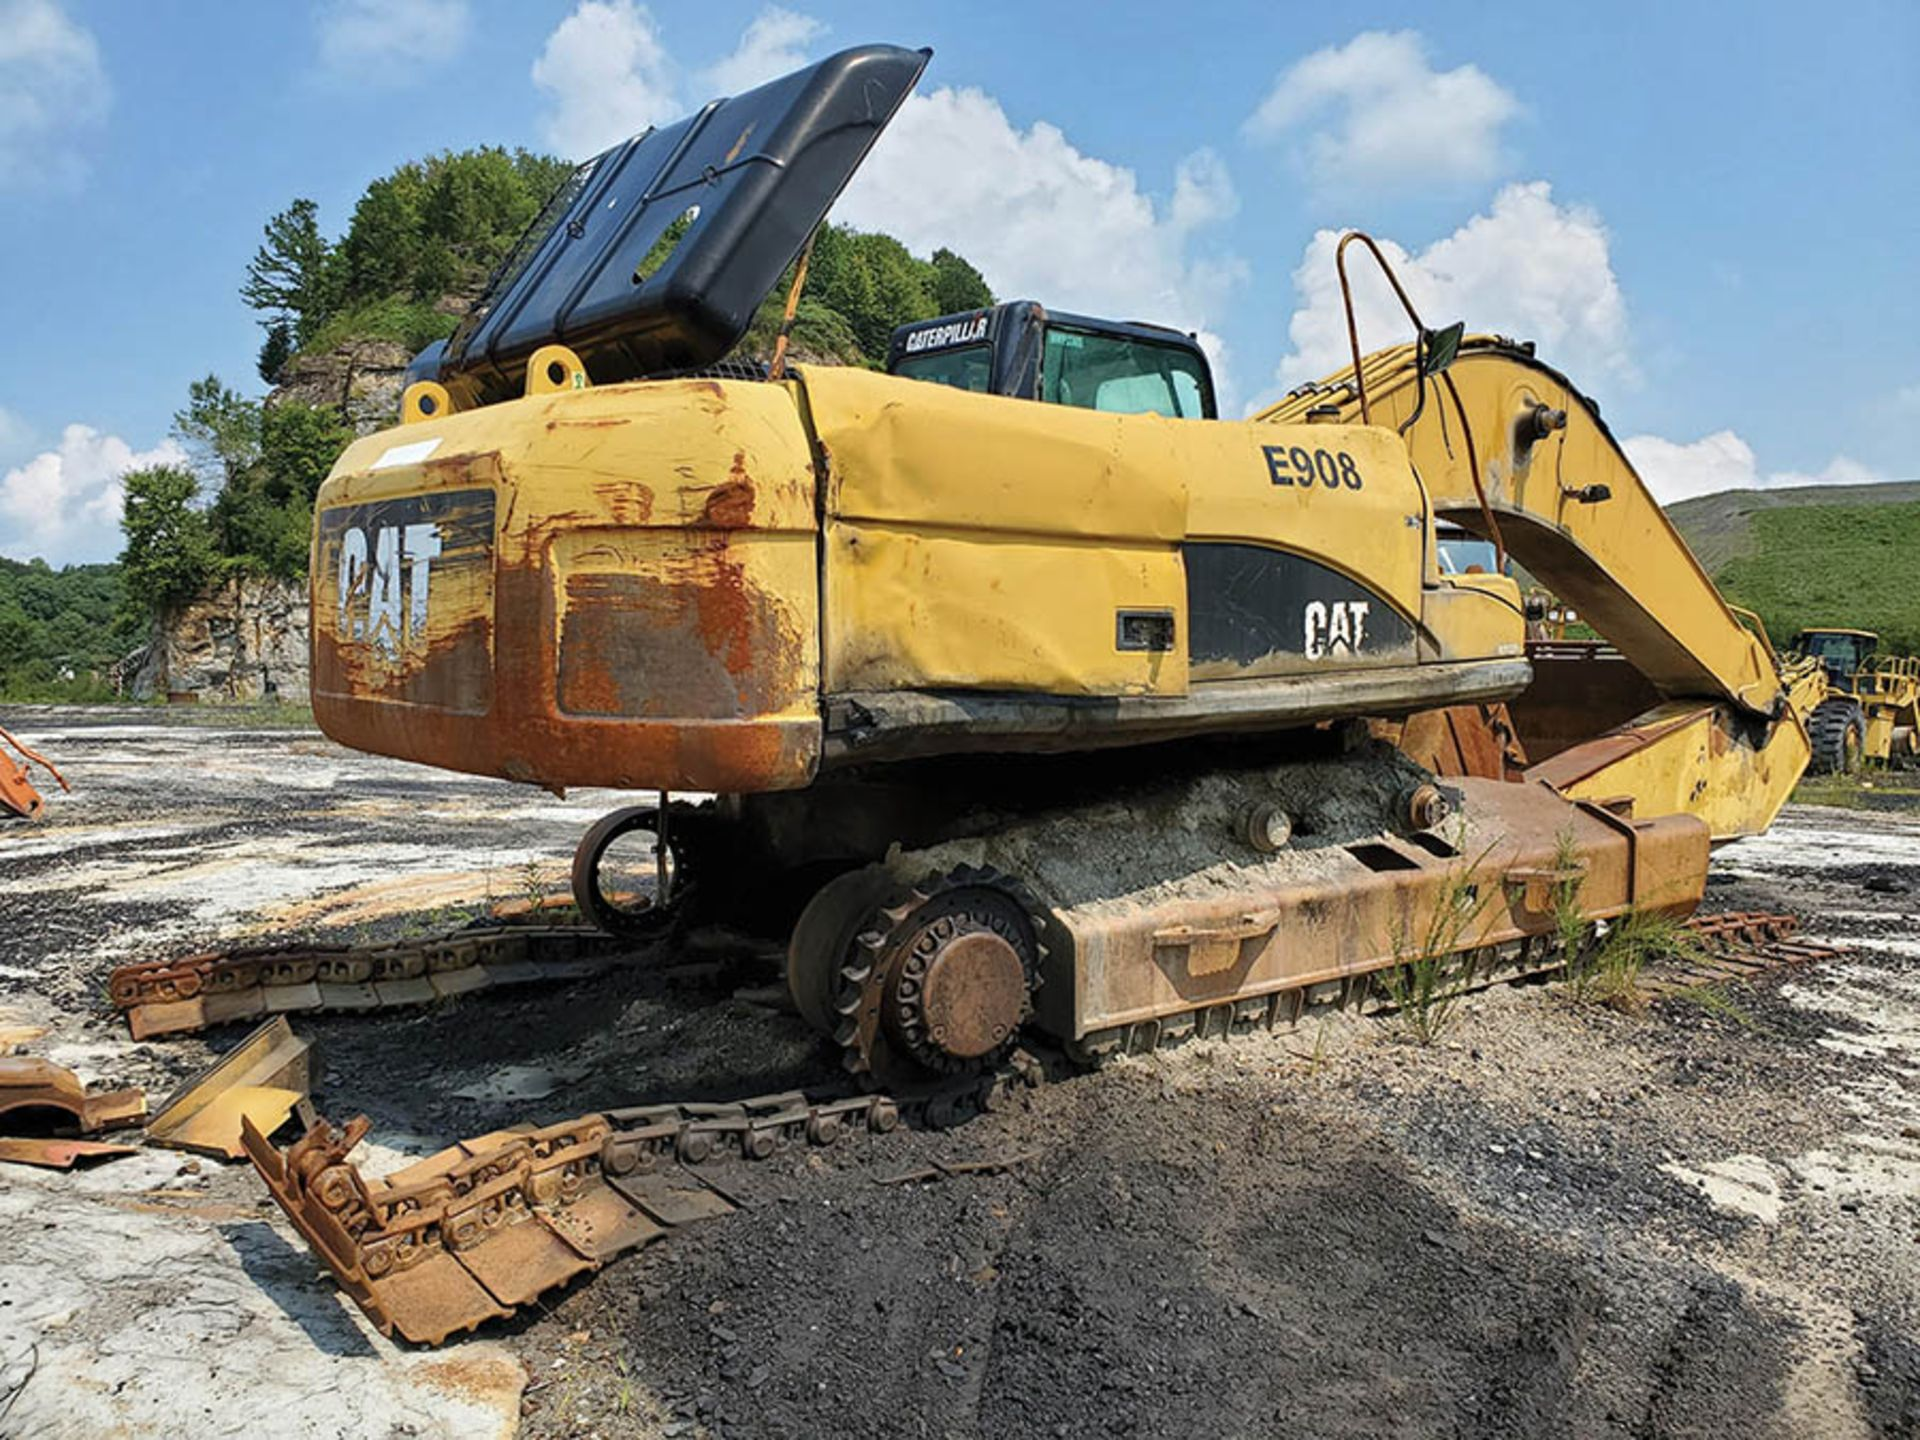 Lot 141 - CATERPILLAR 330DL EXCAVATOR, S/N: CAT0330DCMWP02305, 46'' BUCKET WITH TEETH, 12'10'' STICK, TRACKS